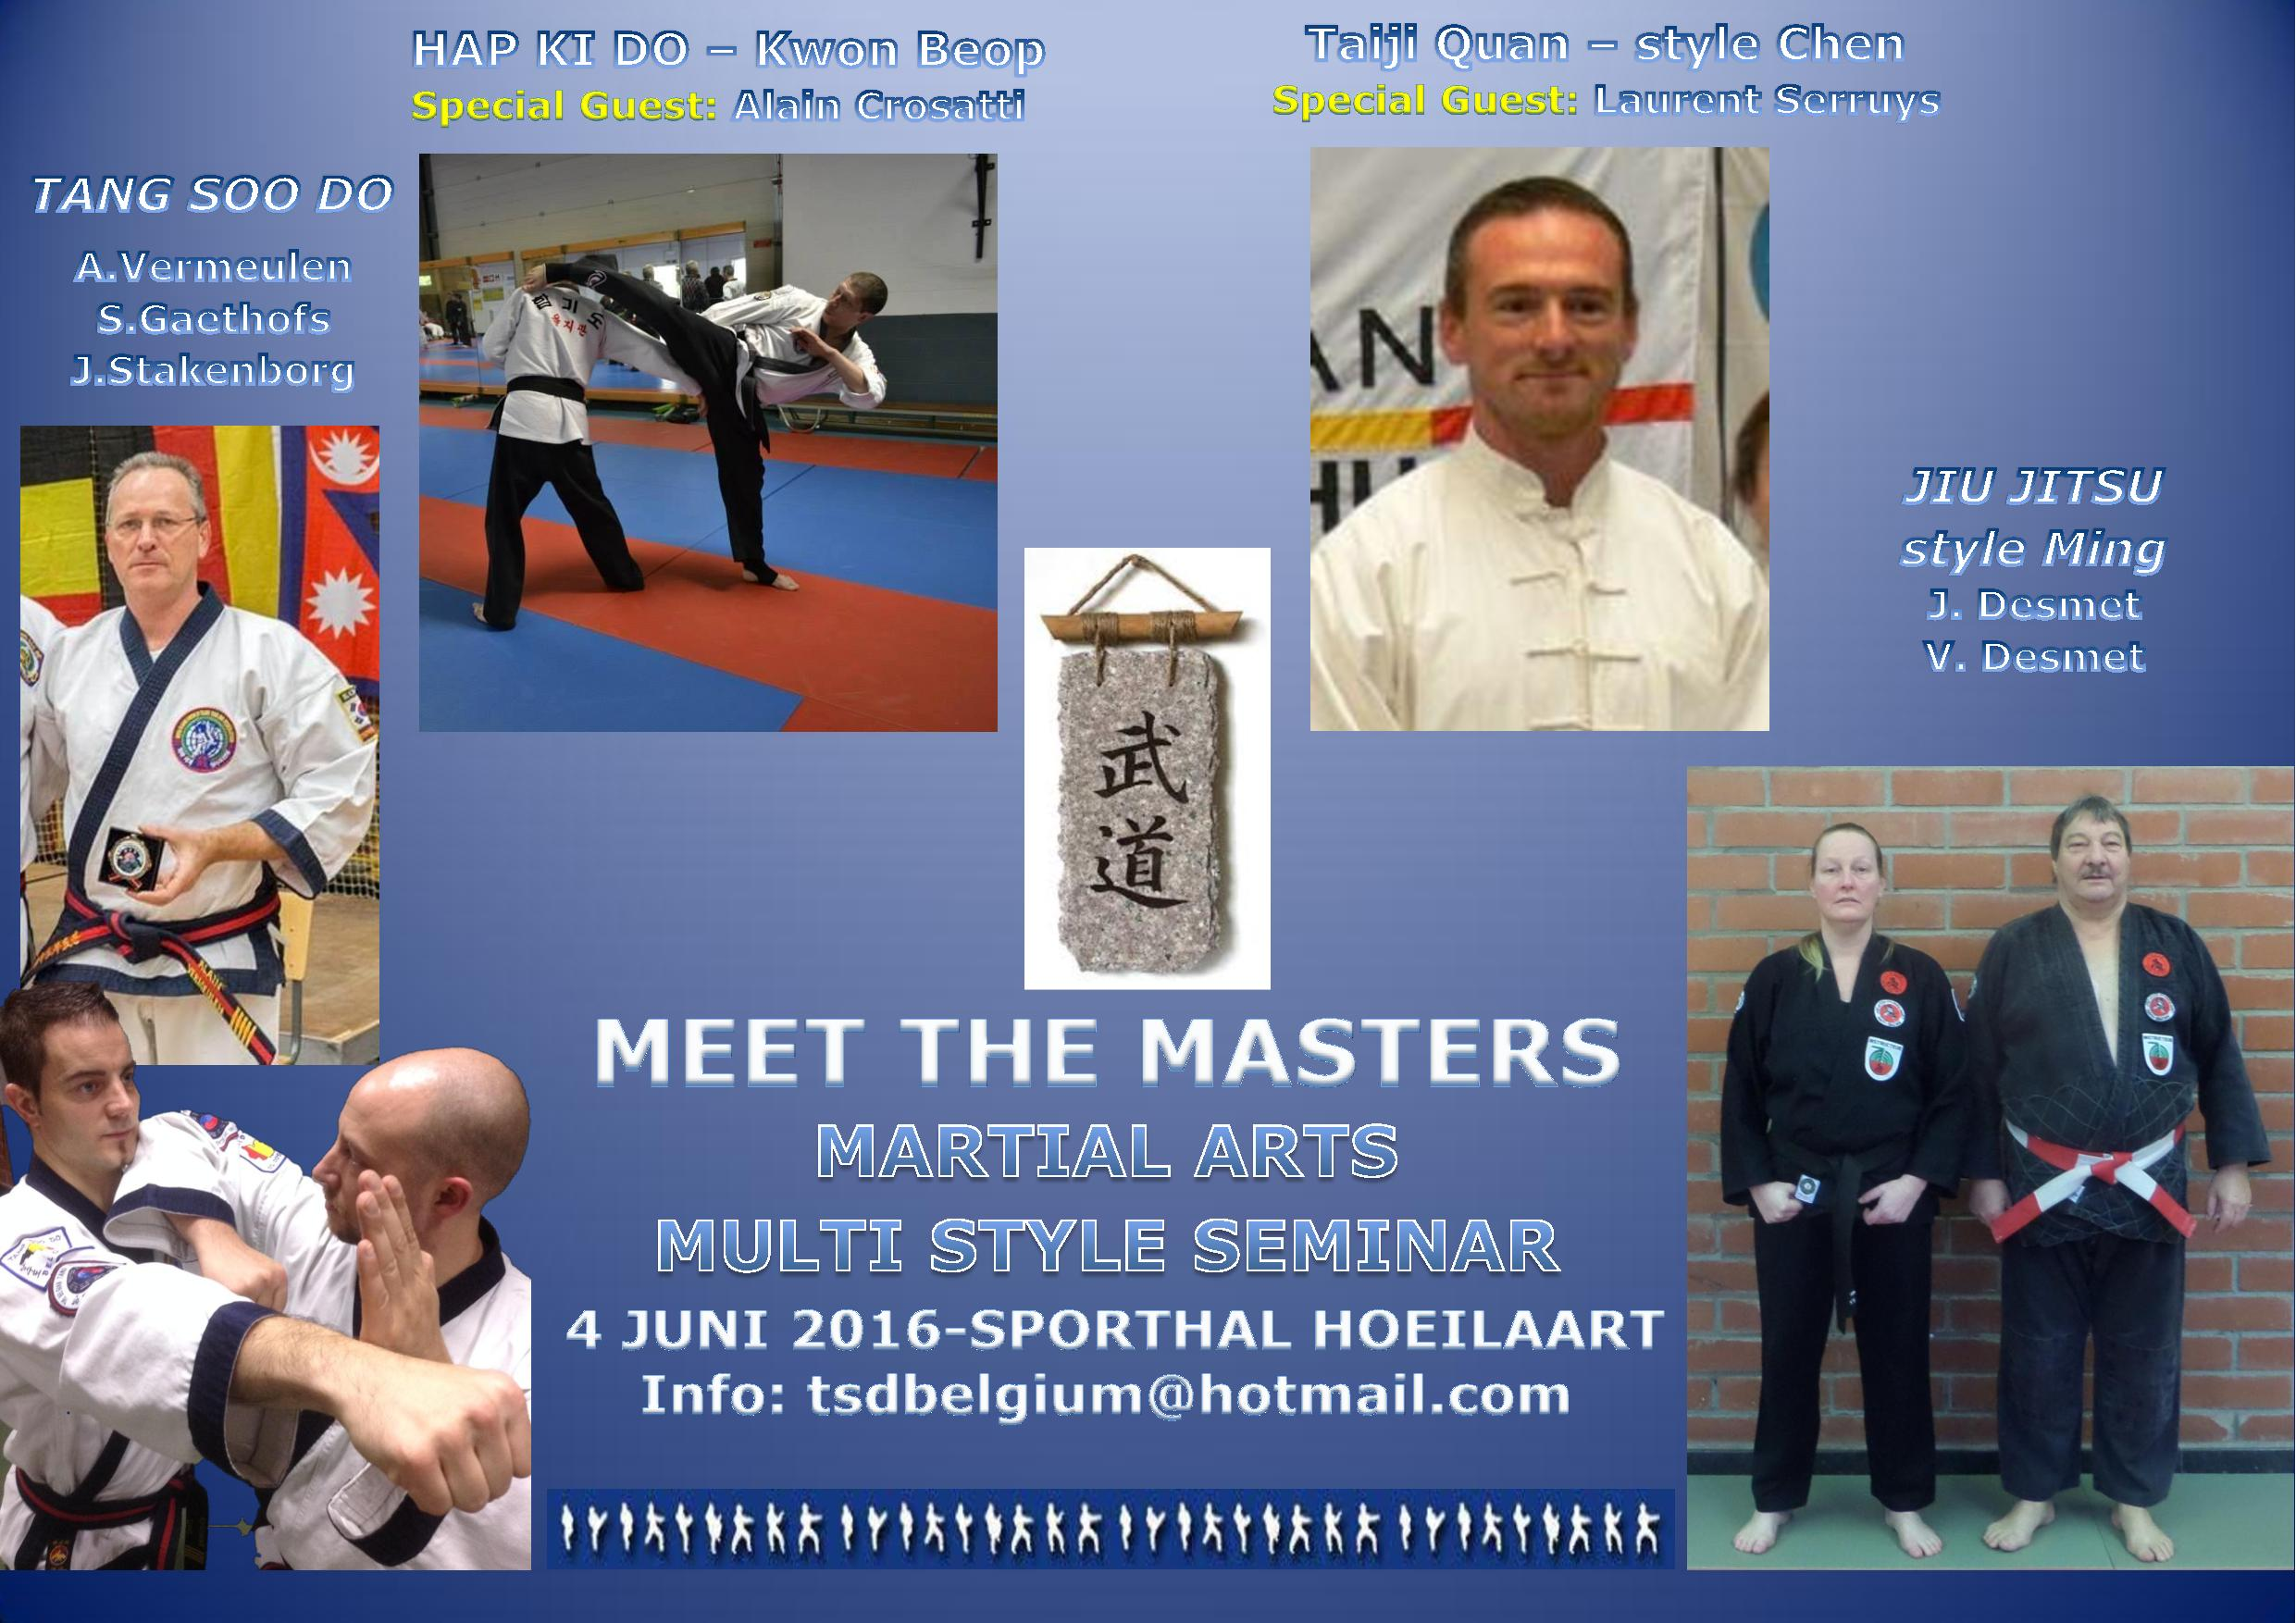 Meet the Masters 4